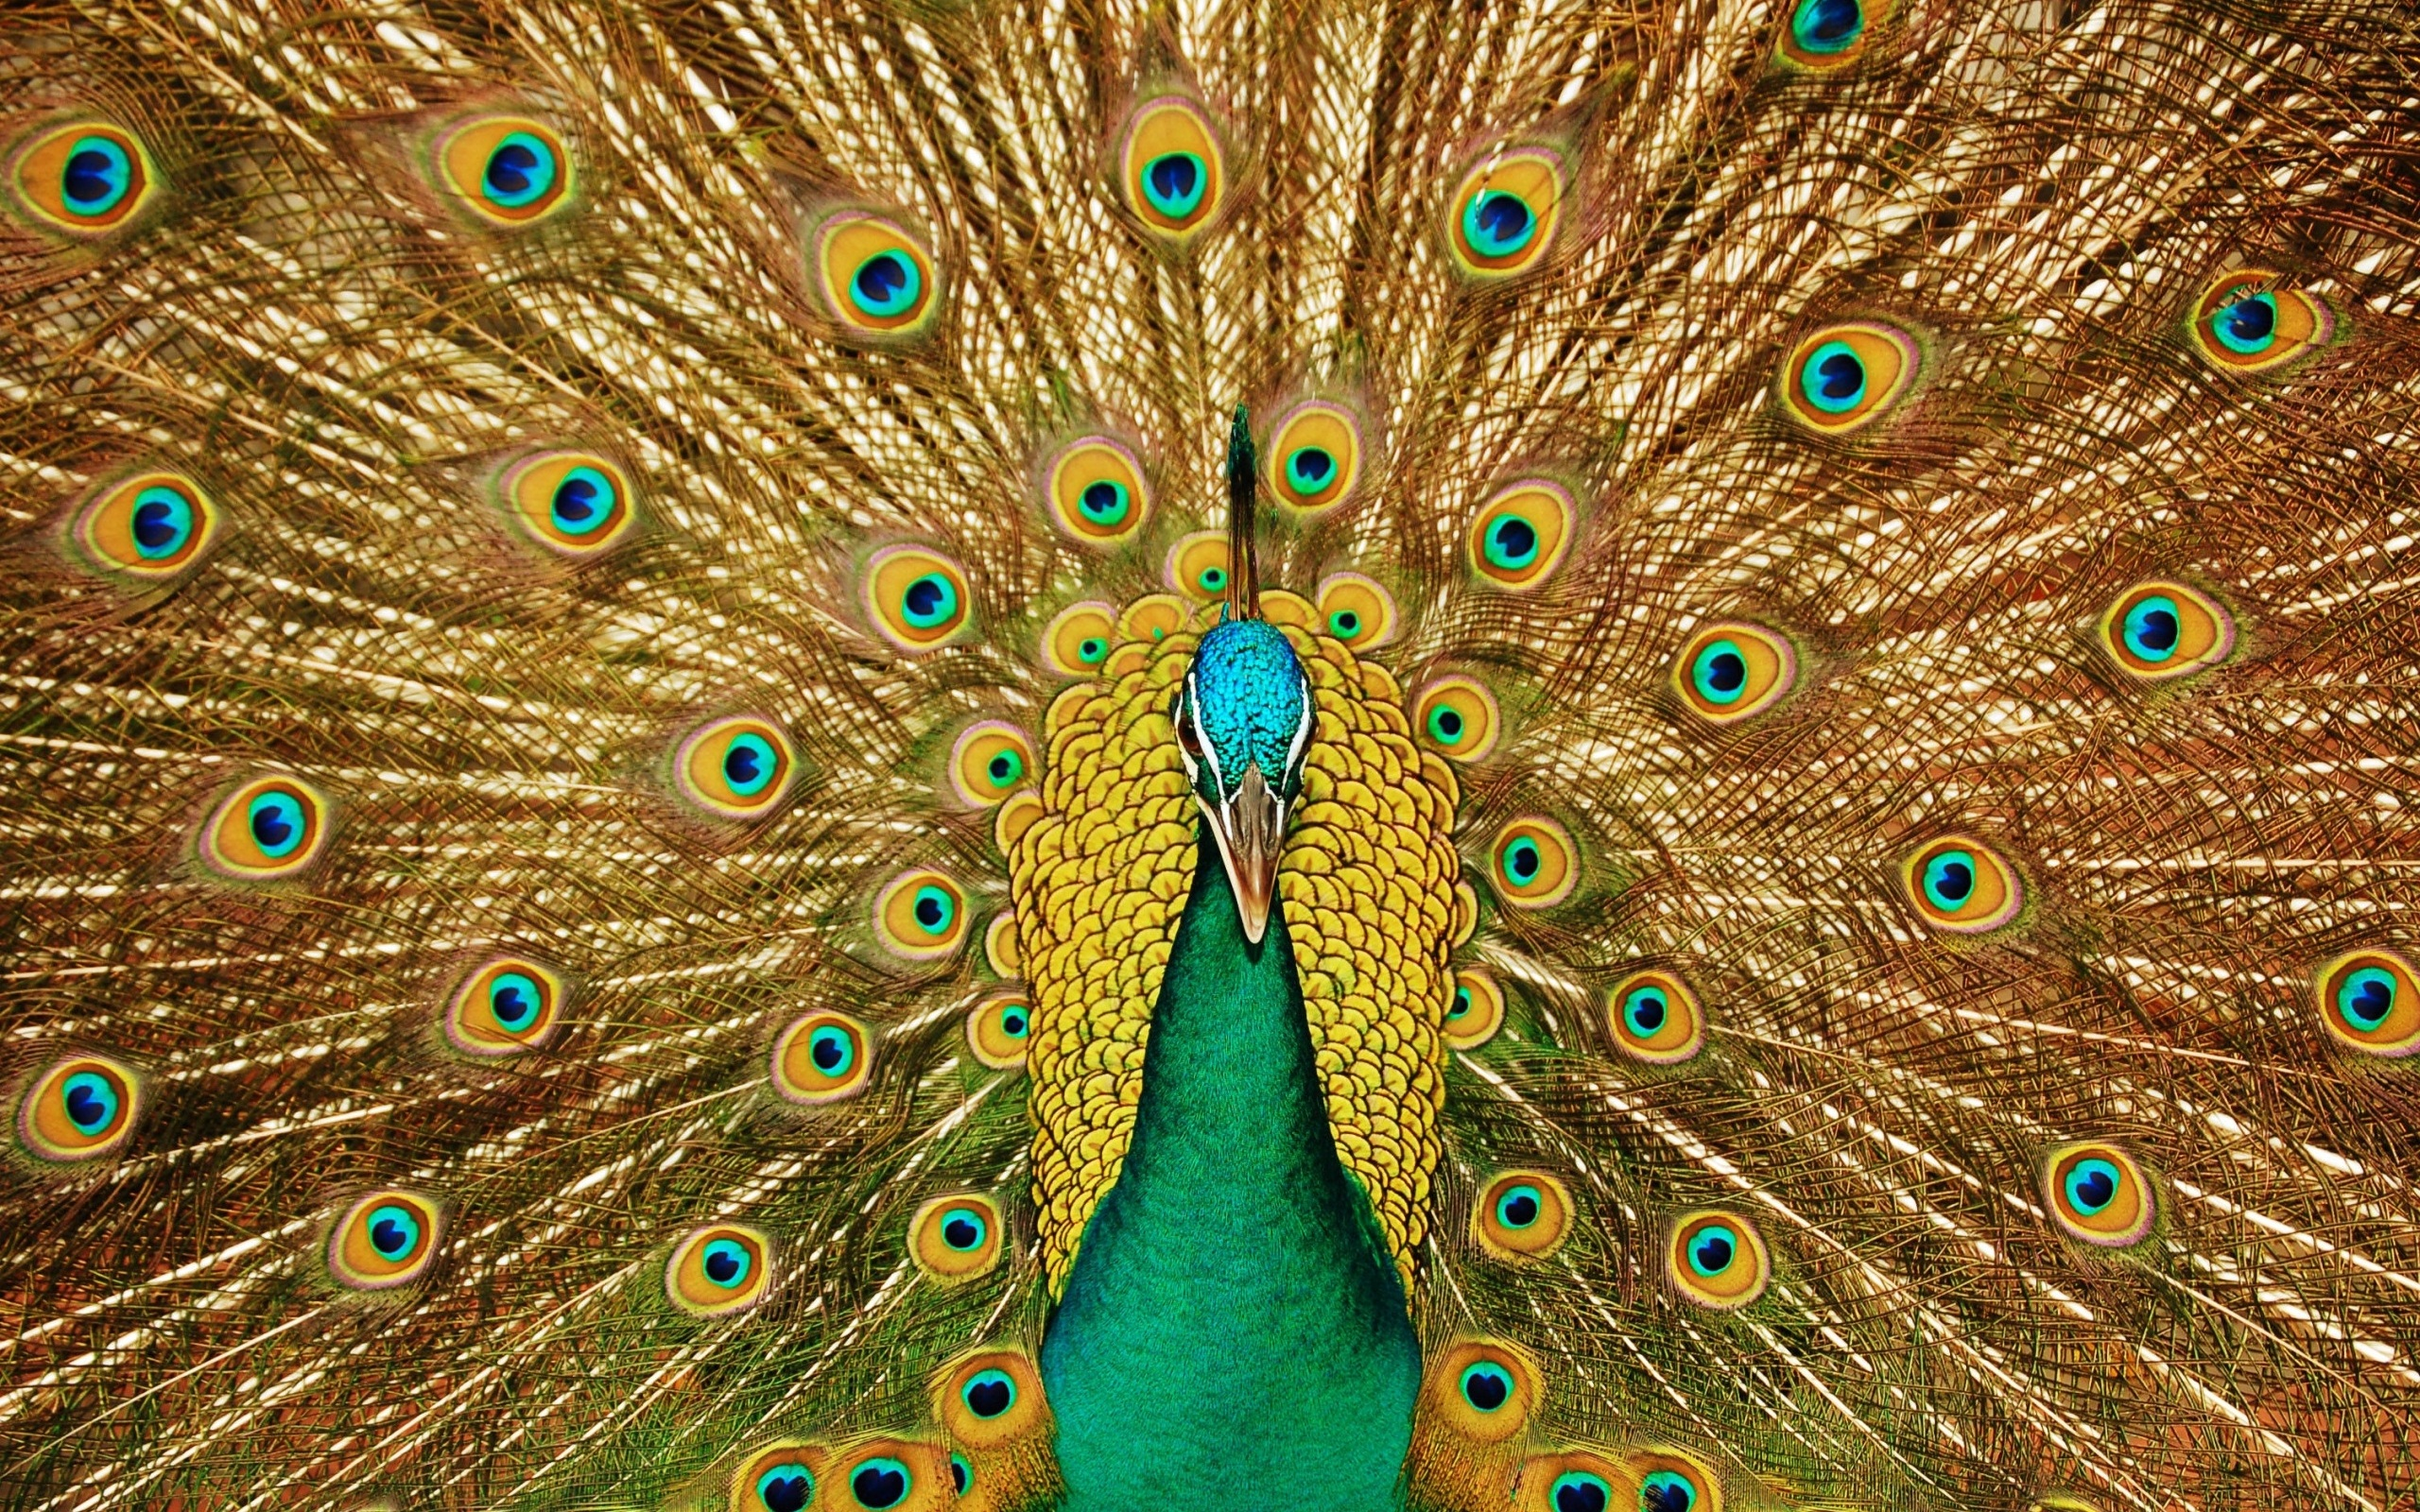 Hd peacock wallpapers free download